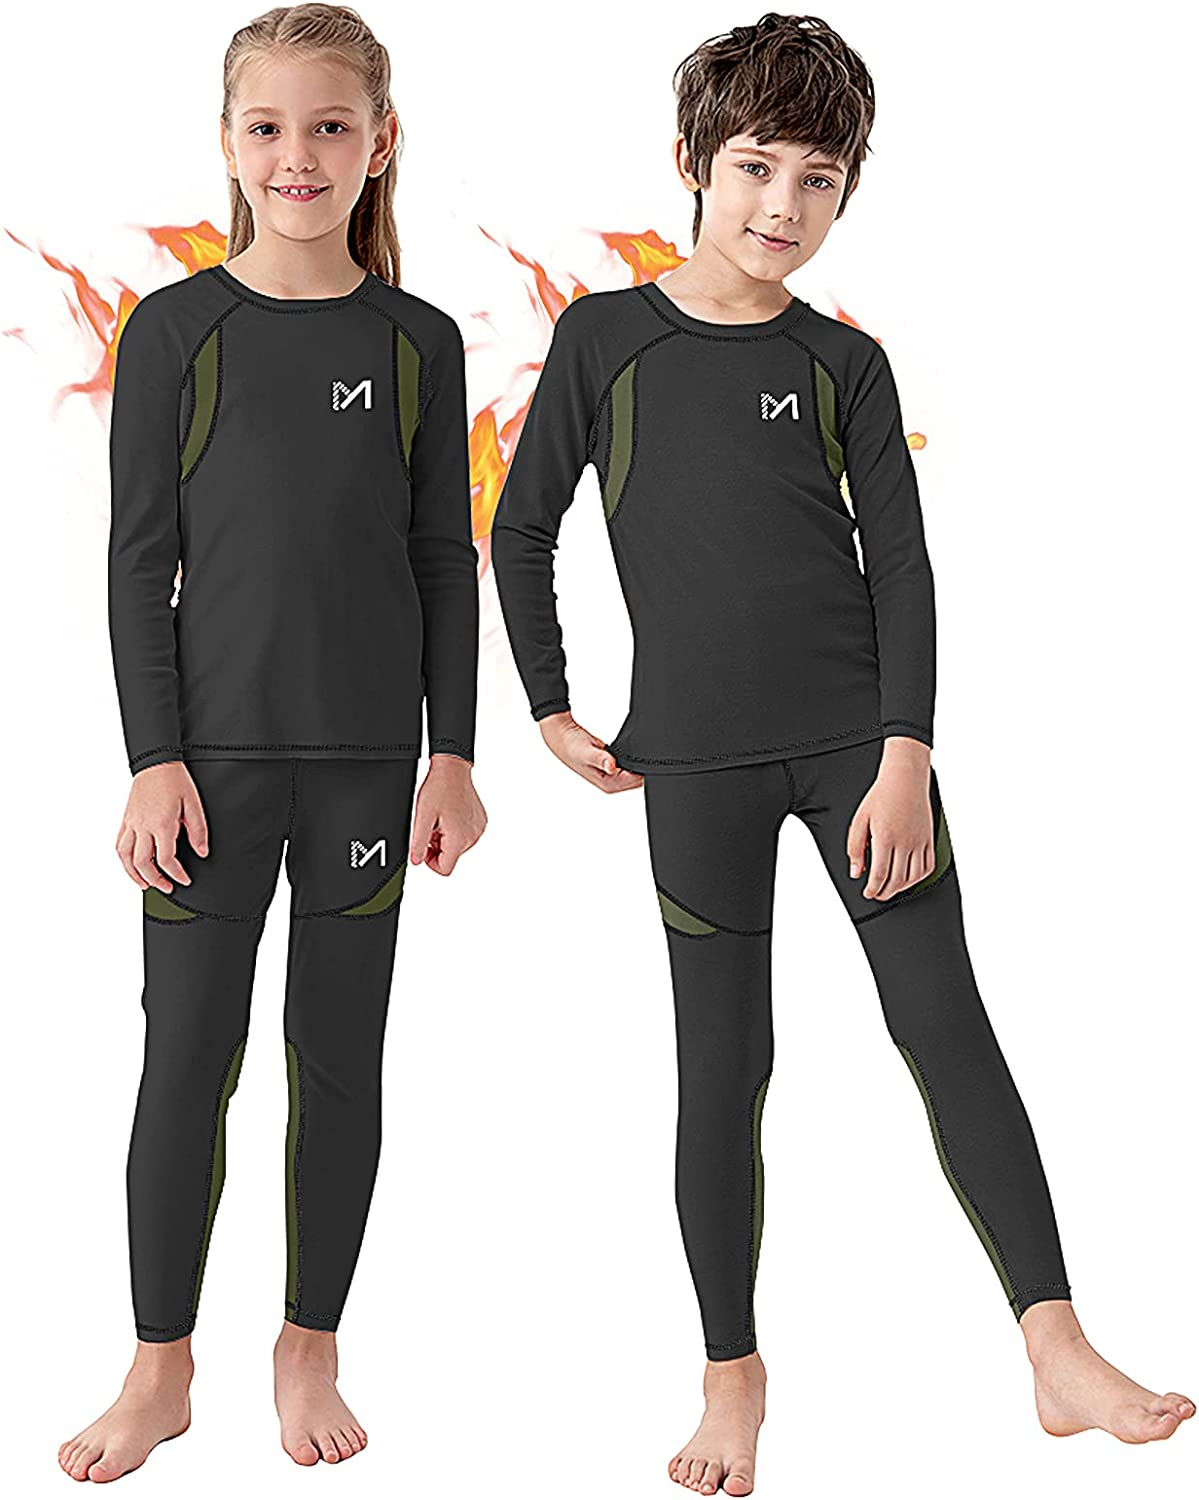 Boys and Girls Thermal Underwear Set, Unisex Fleece Lined Compression Base Layer, Winter Long Johns for Kids 8-16 Years